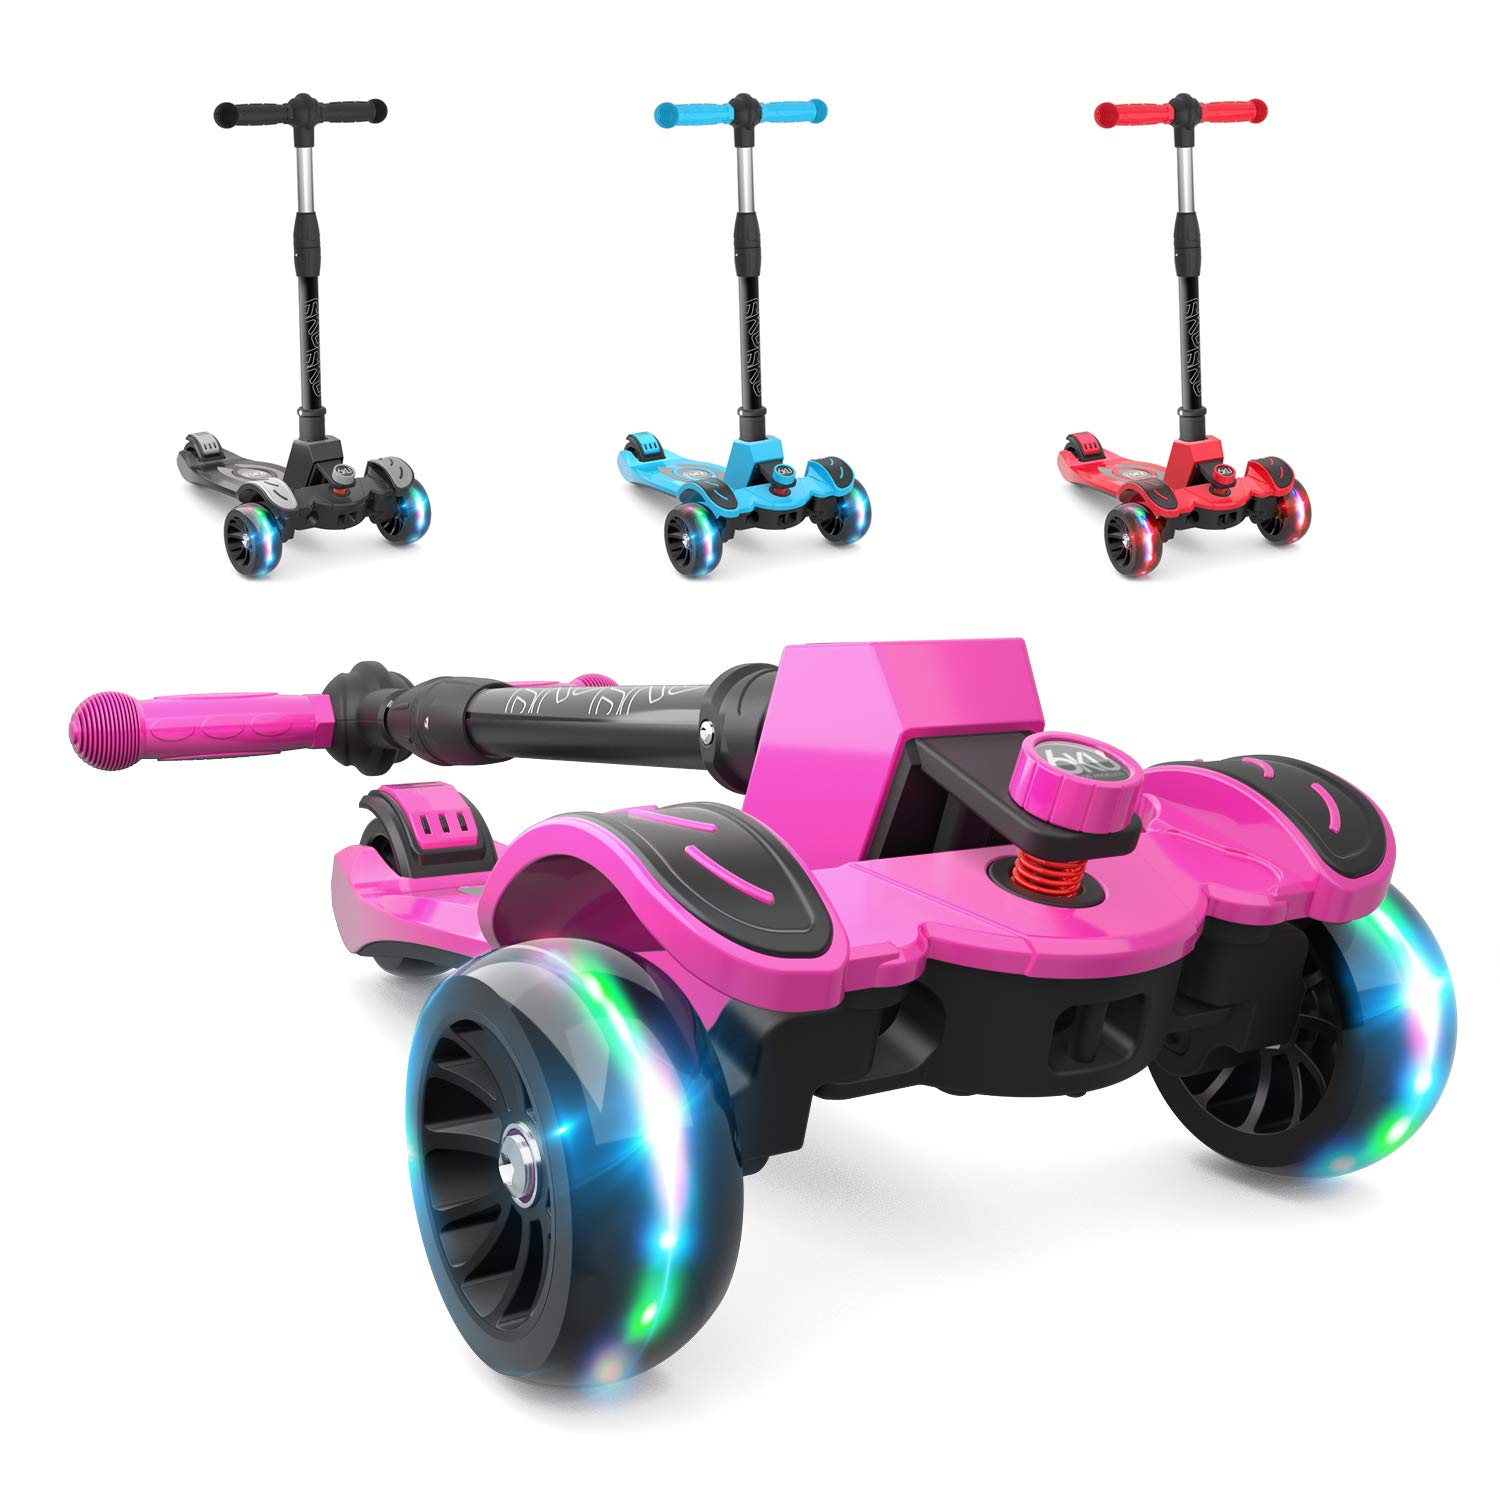 6KU Kids Kick Scooter with Adjustable Height, Lean to Steer, Flashing Wheels for Children 3-8 Years Old Pink by 6KU